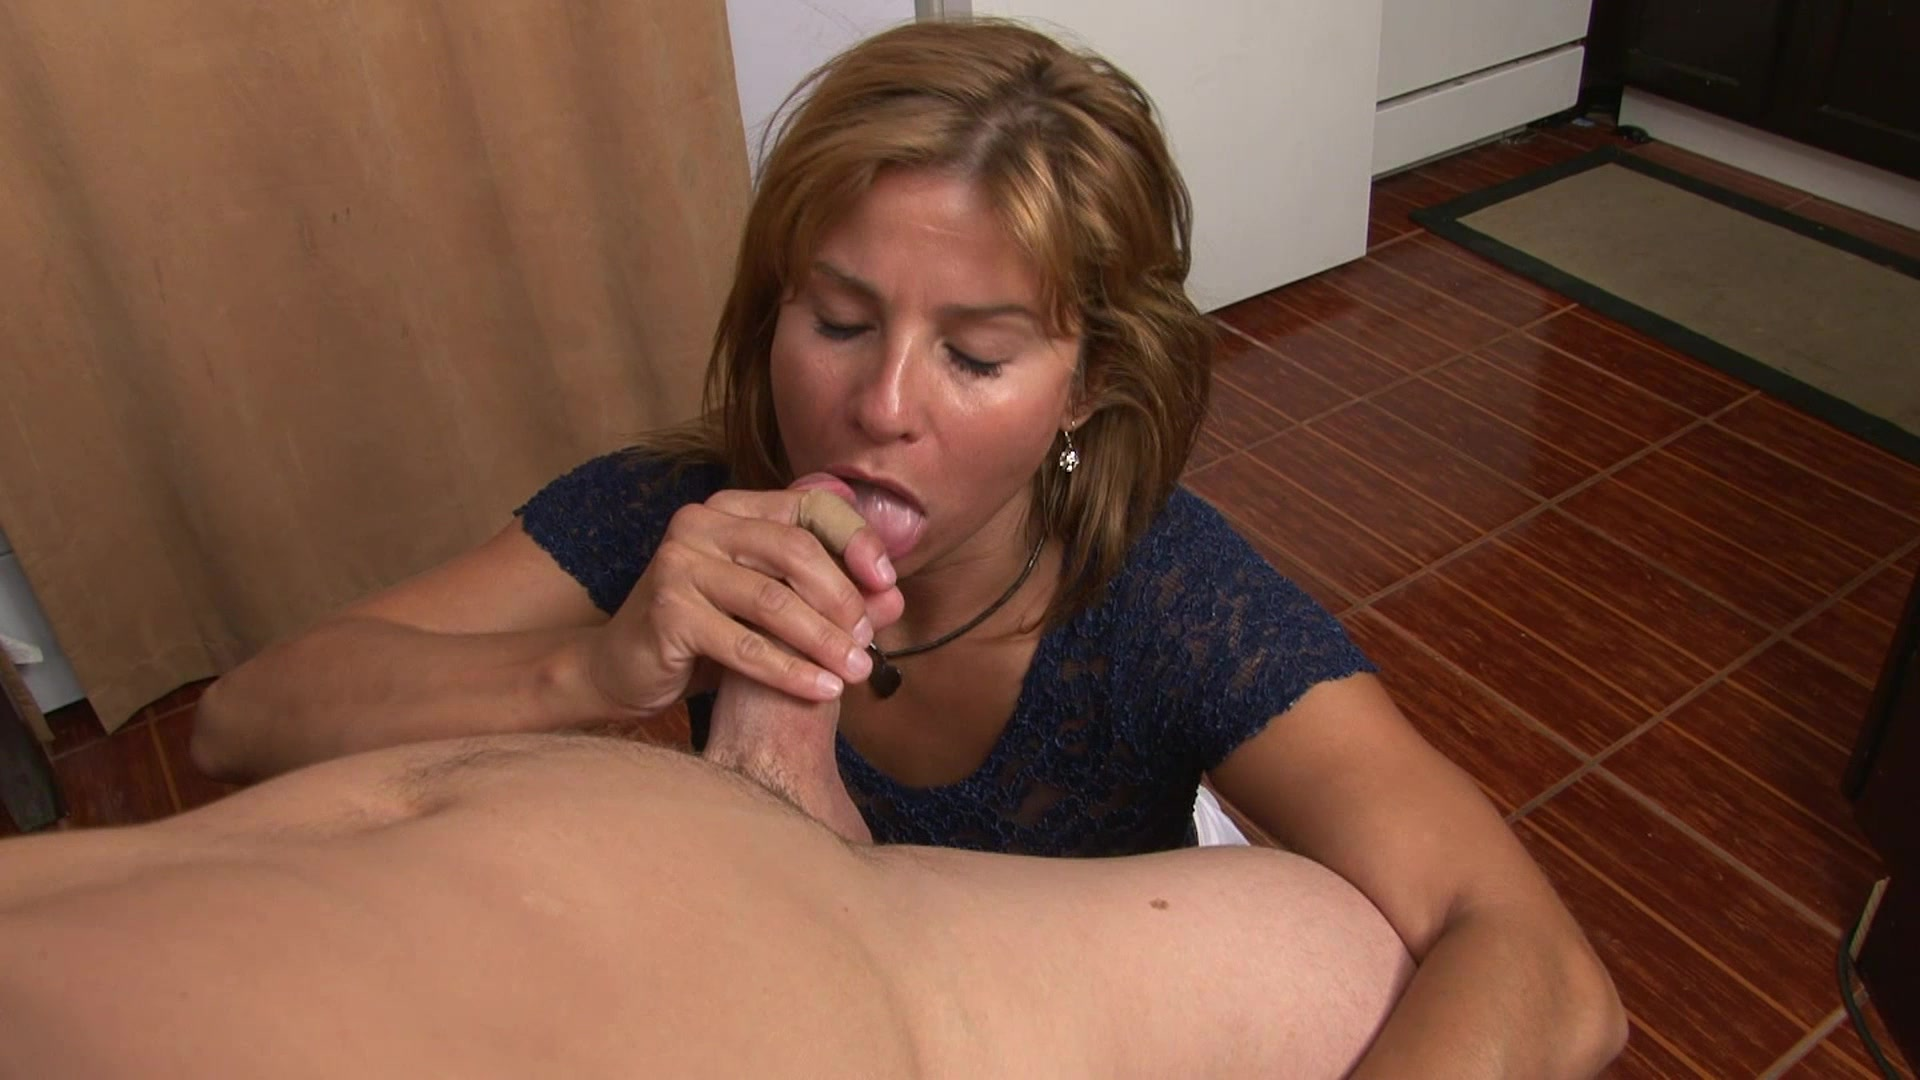 10 amateur facial cumshots vol 16 2